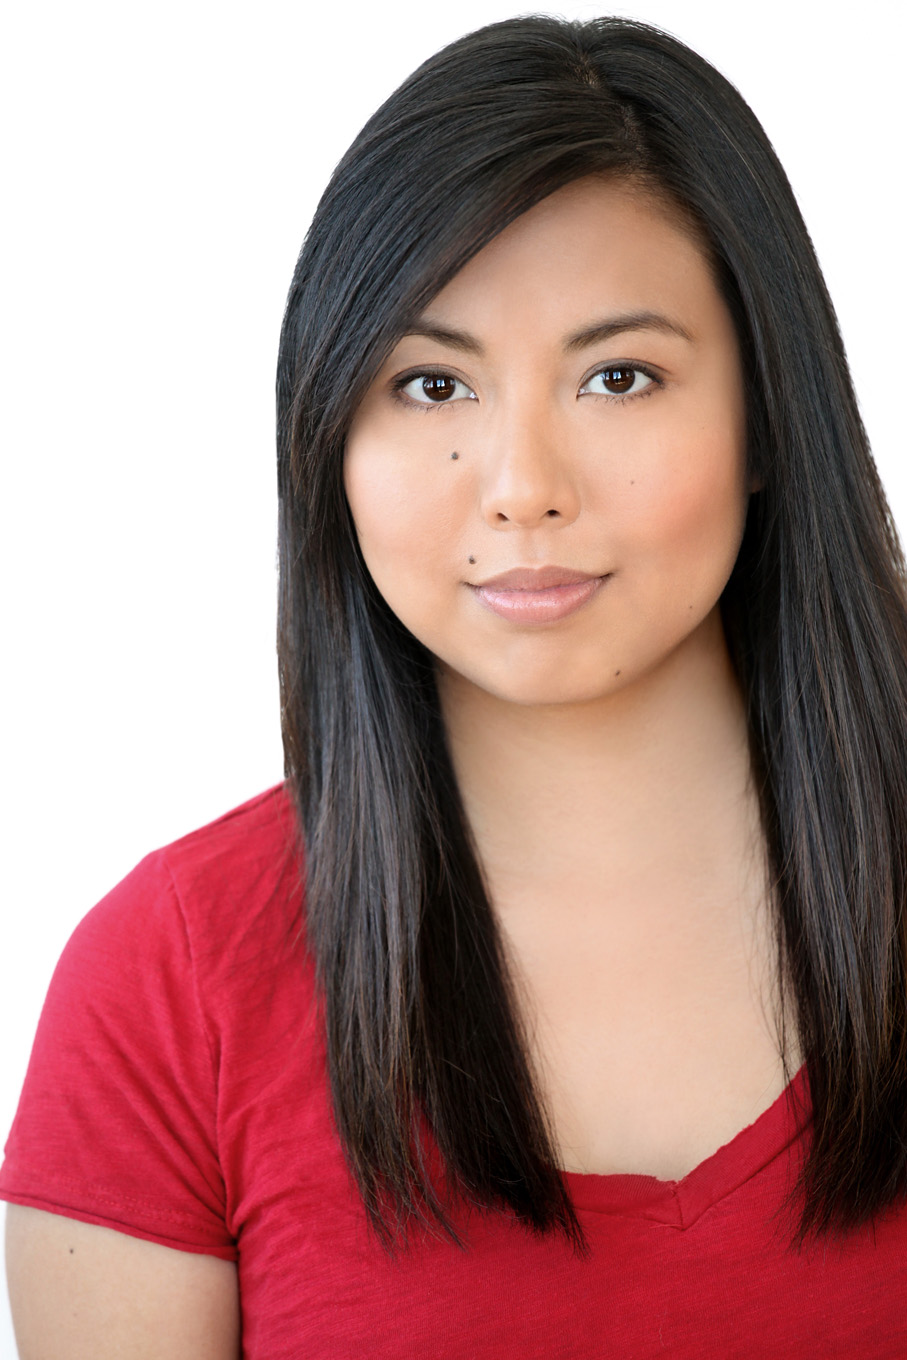 194: Rosie Tran – What Stand Up Comedy Can Teach Every Solopreneur (BEST OF)